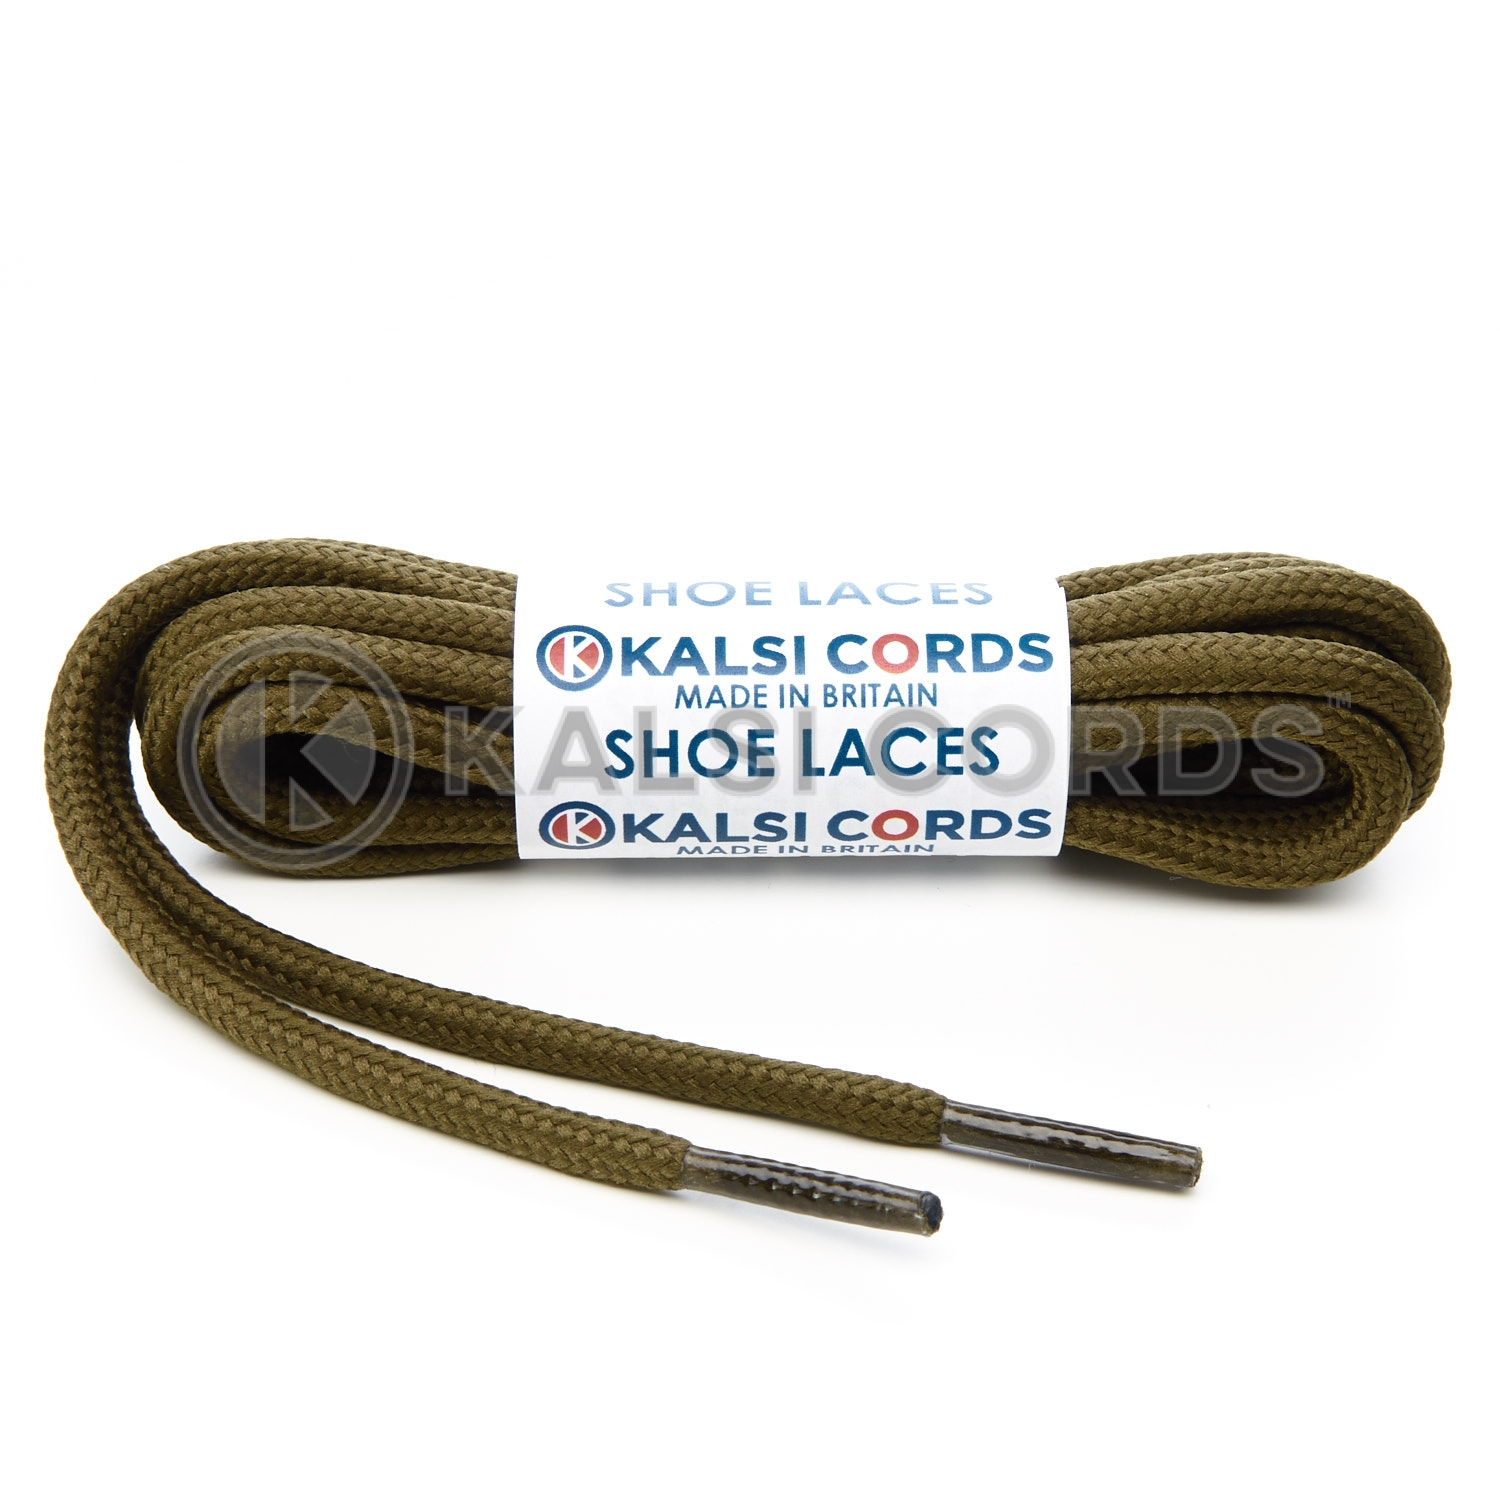 T621 5mm Round Cord Shoe Laces Everglade Green PG797 Kids Trainers Adults Hiking Walking Boots Kalsi Cords